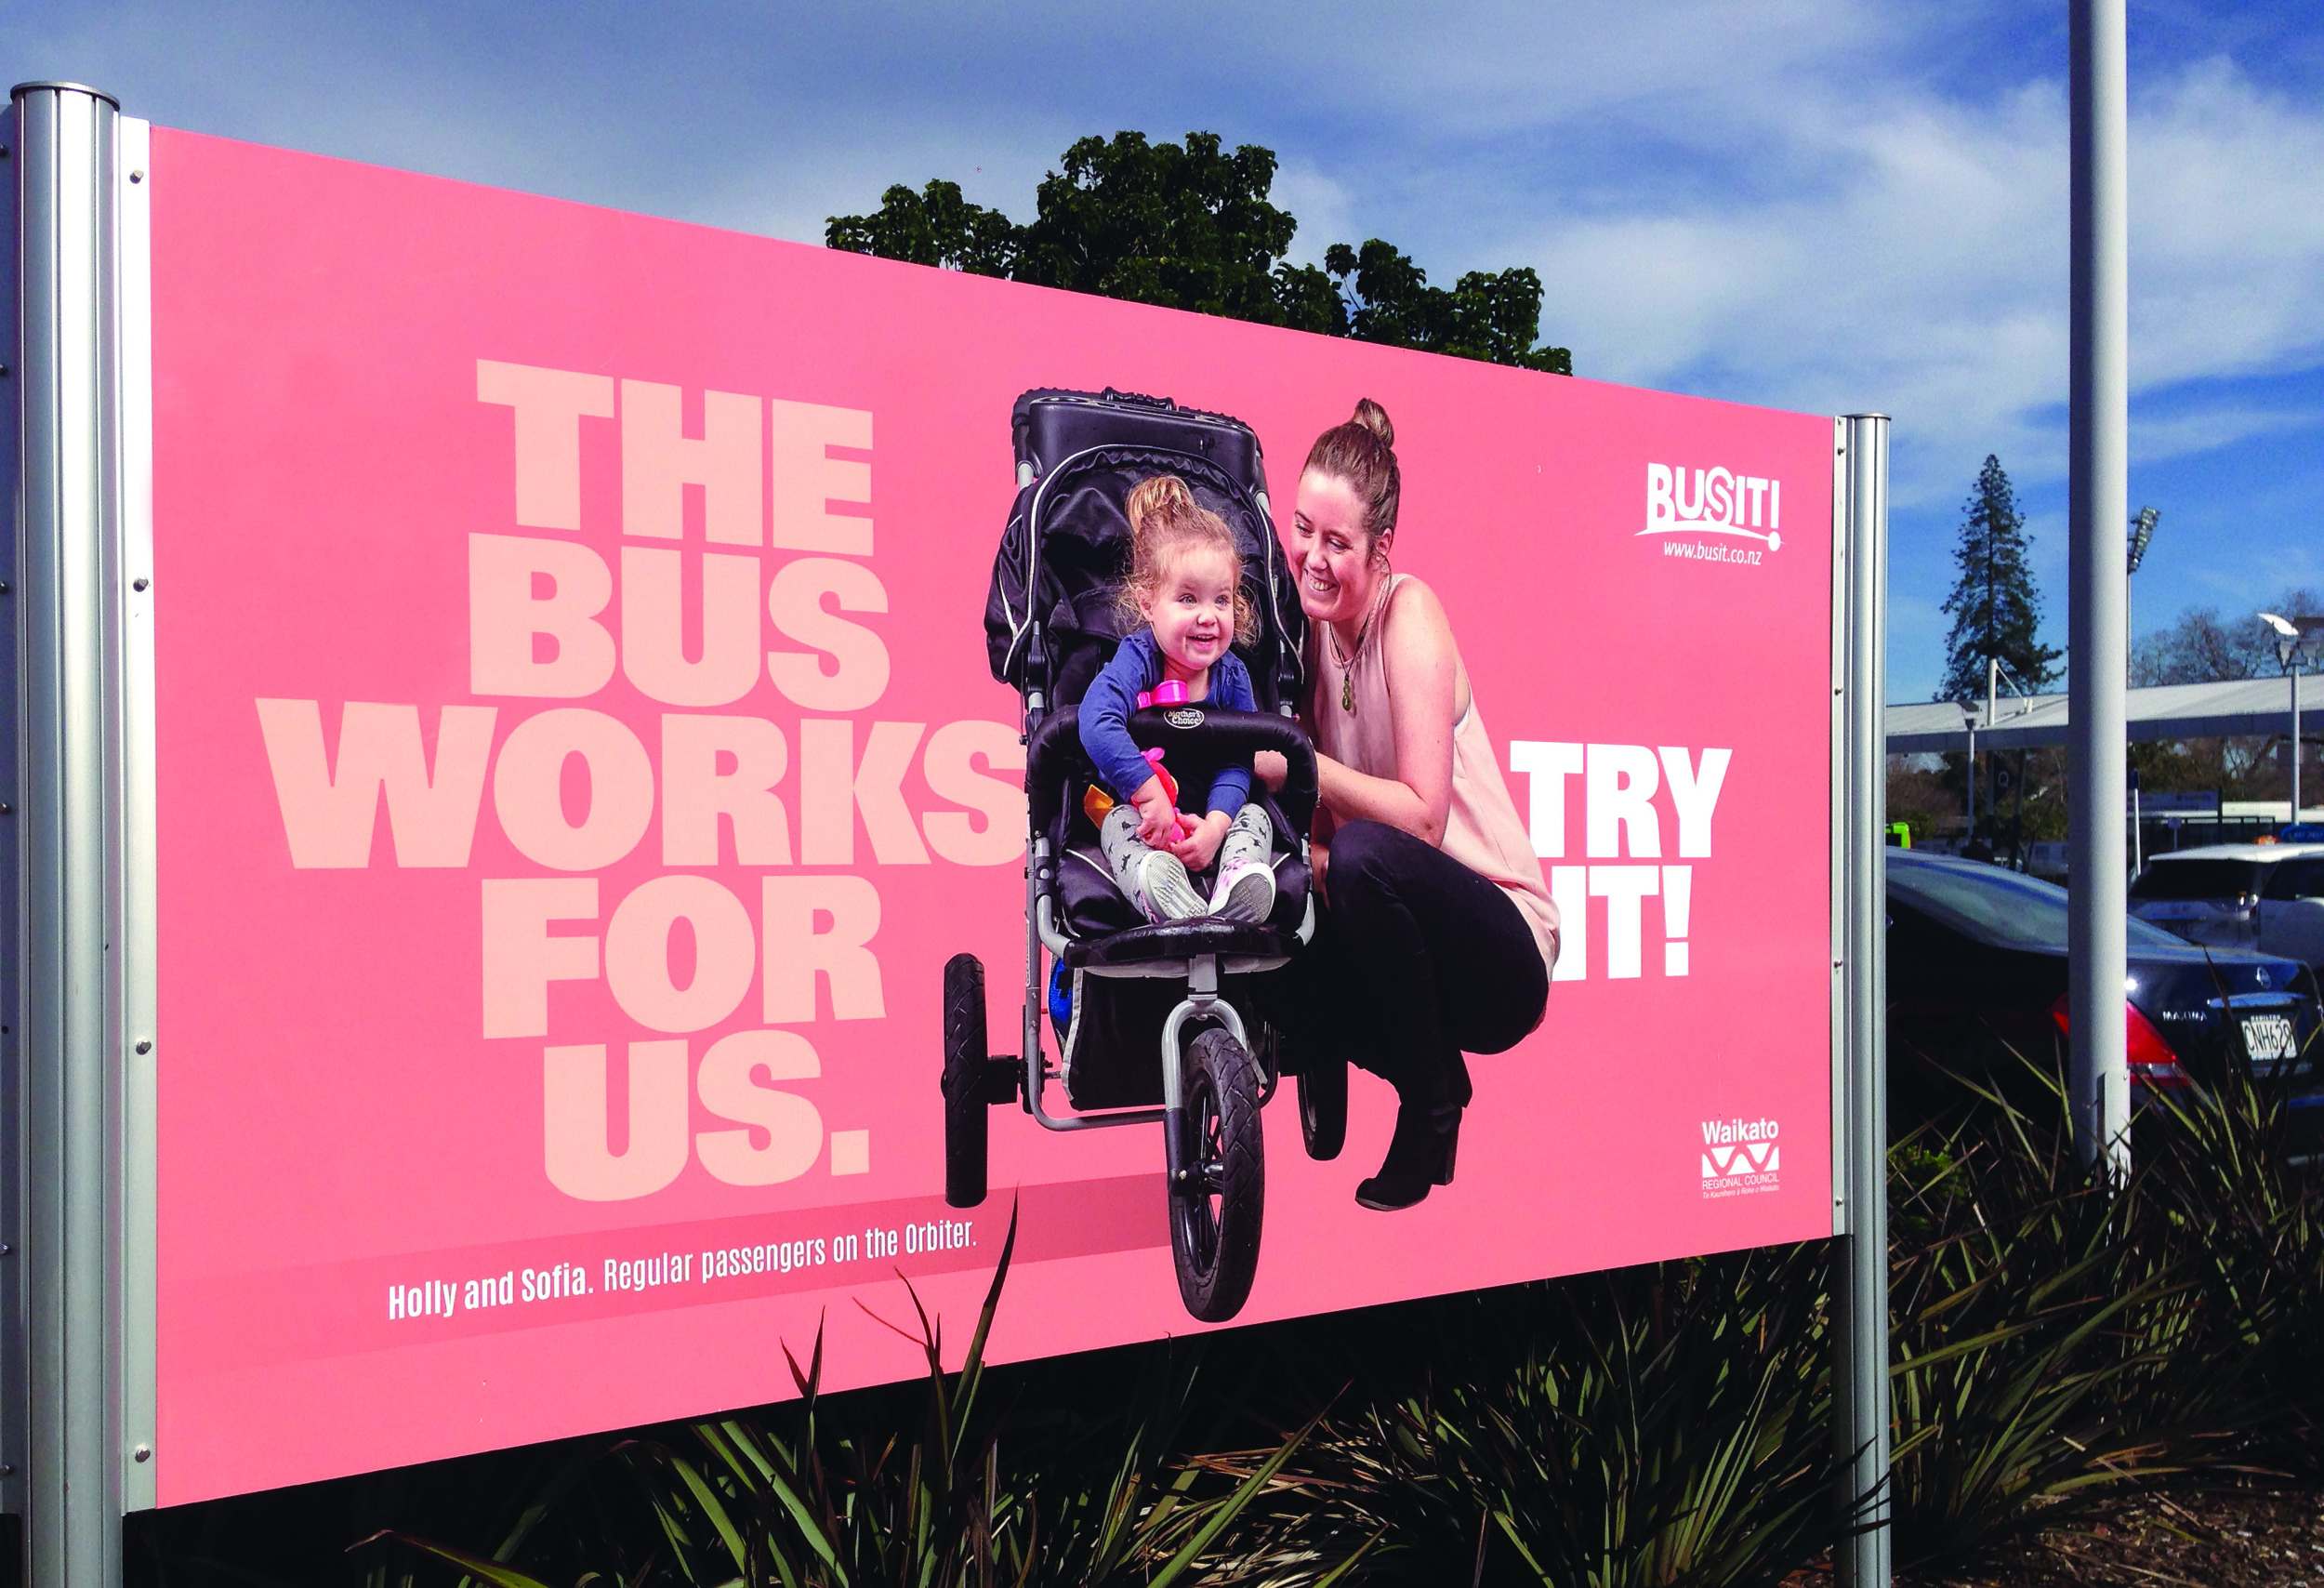 Campaign for Waikato Regional Council to get more people on the bus